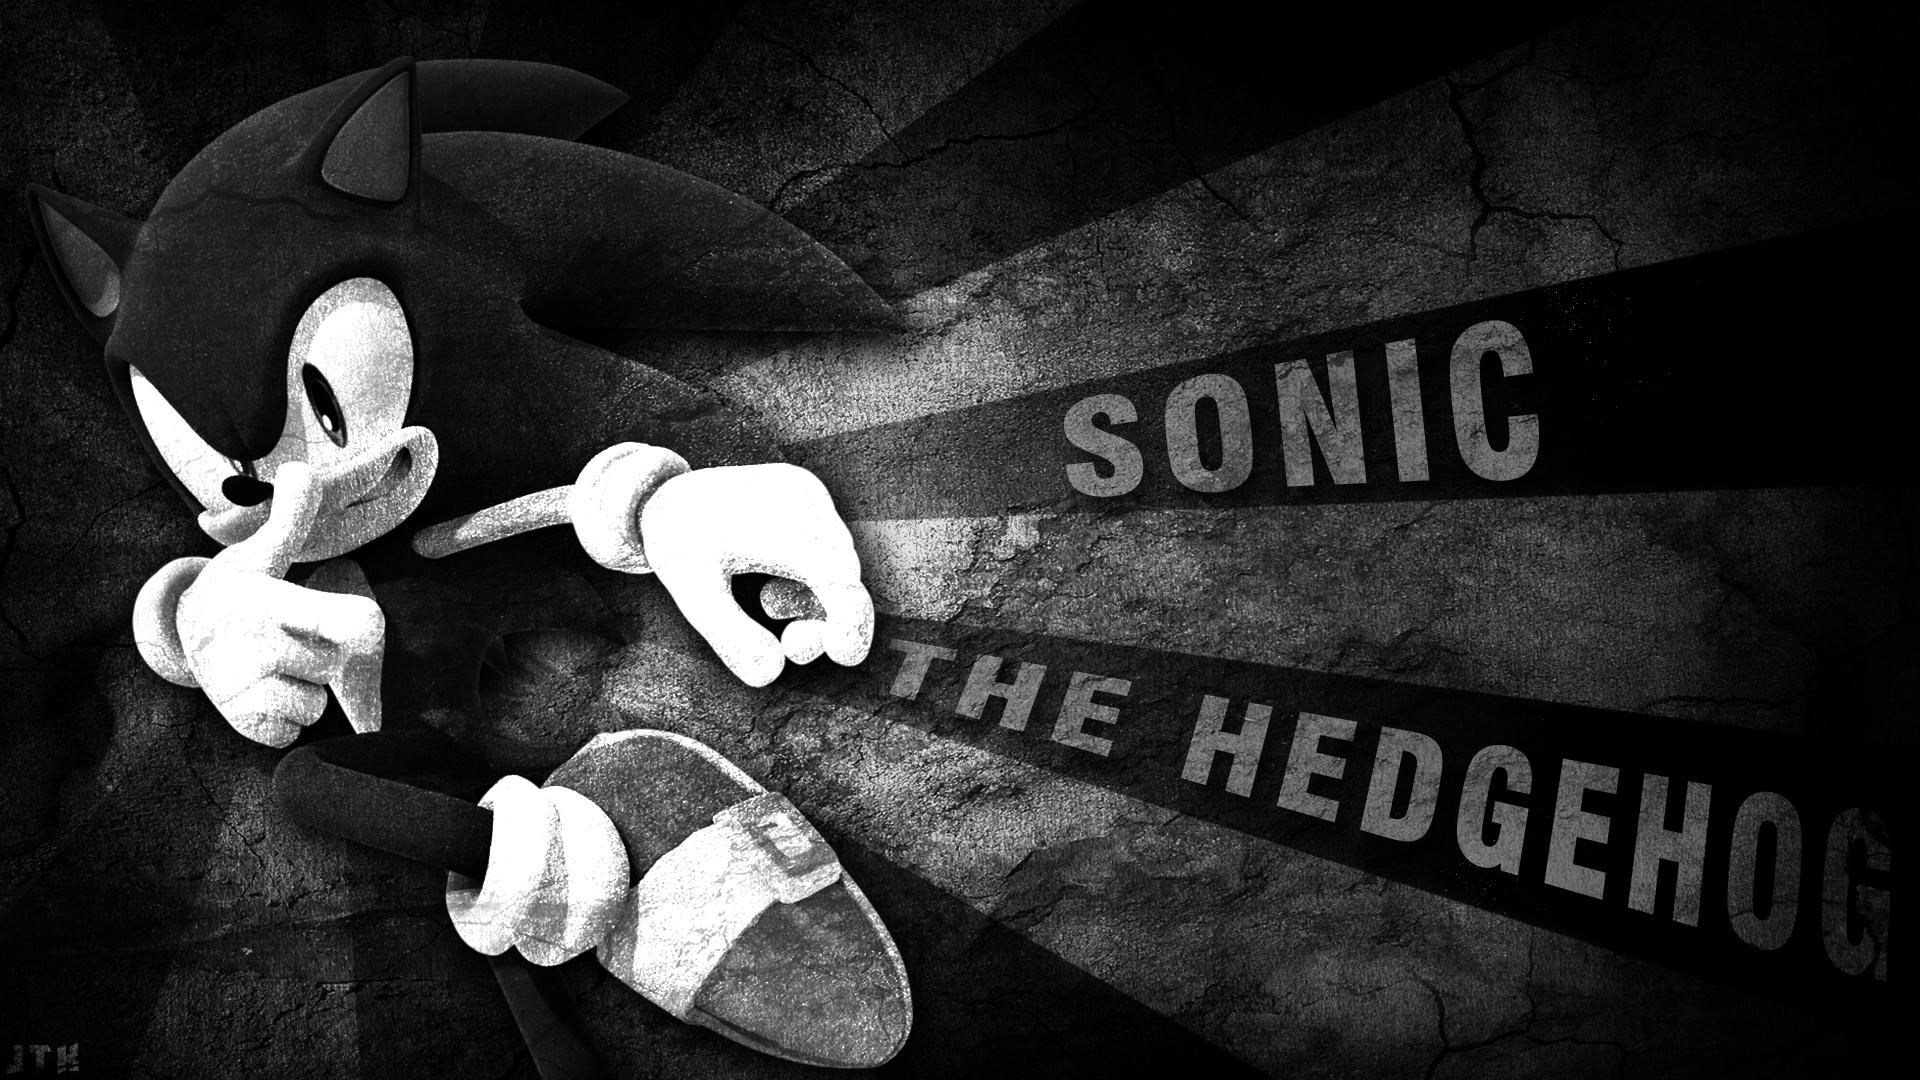 Sonic The Hedgehog Wallpaper Black And White By Jacktheknight On Deviantart